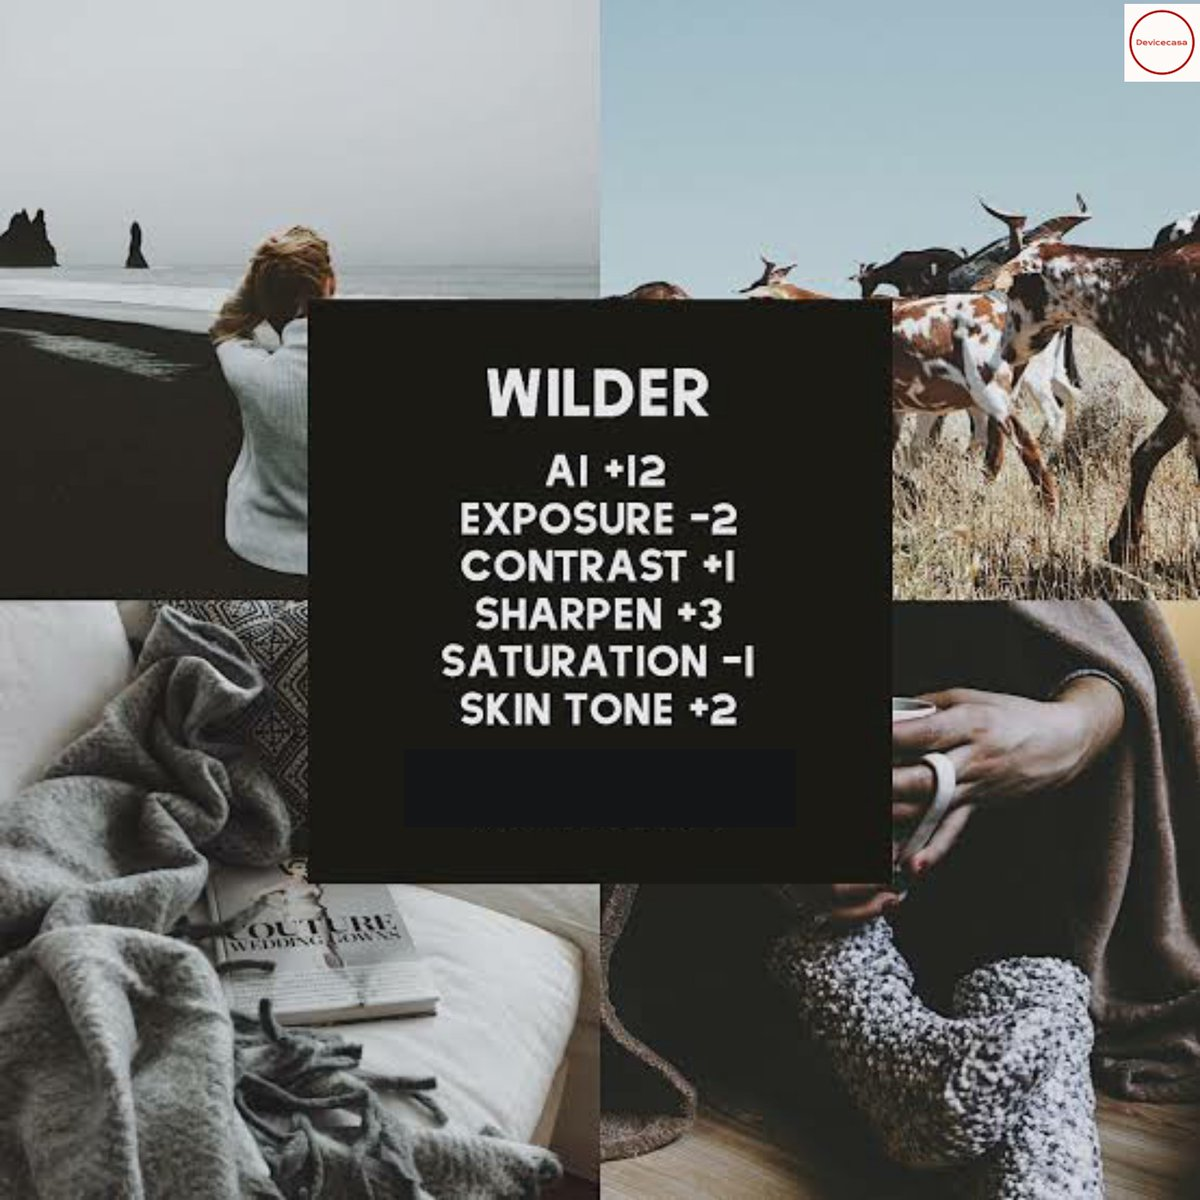 Get To Know About The Most Aesthetic VSCO Filters To Give Your Photos An Edge! Visit site to discover the best gadgets available!    #vsco#vscocam#photography#photooftheday#travel#springoutfit#vscooutfitideas#vscofilter#vscogirl#aesthetic#spring